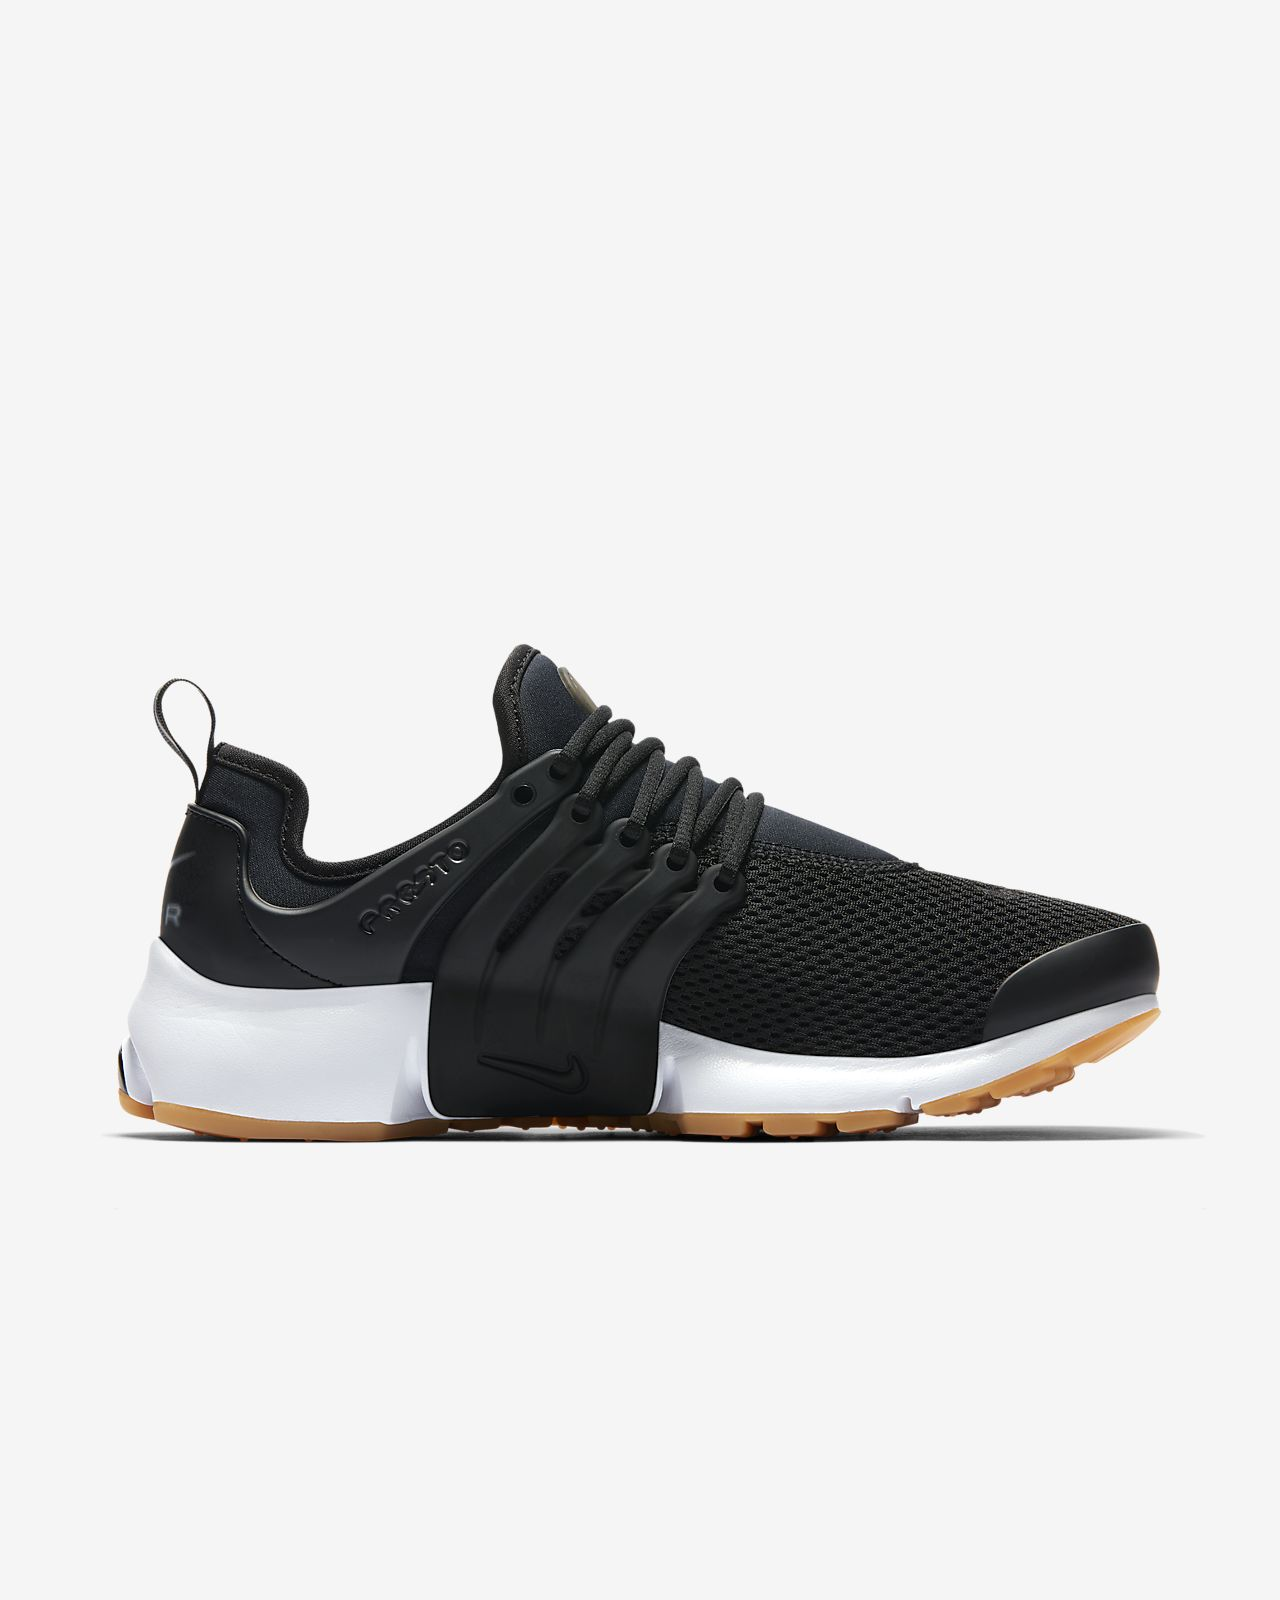 the latest 3a3e5 d2d09 ... Nike Air Presto Womens Shoe